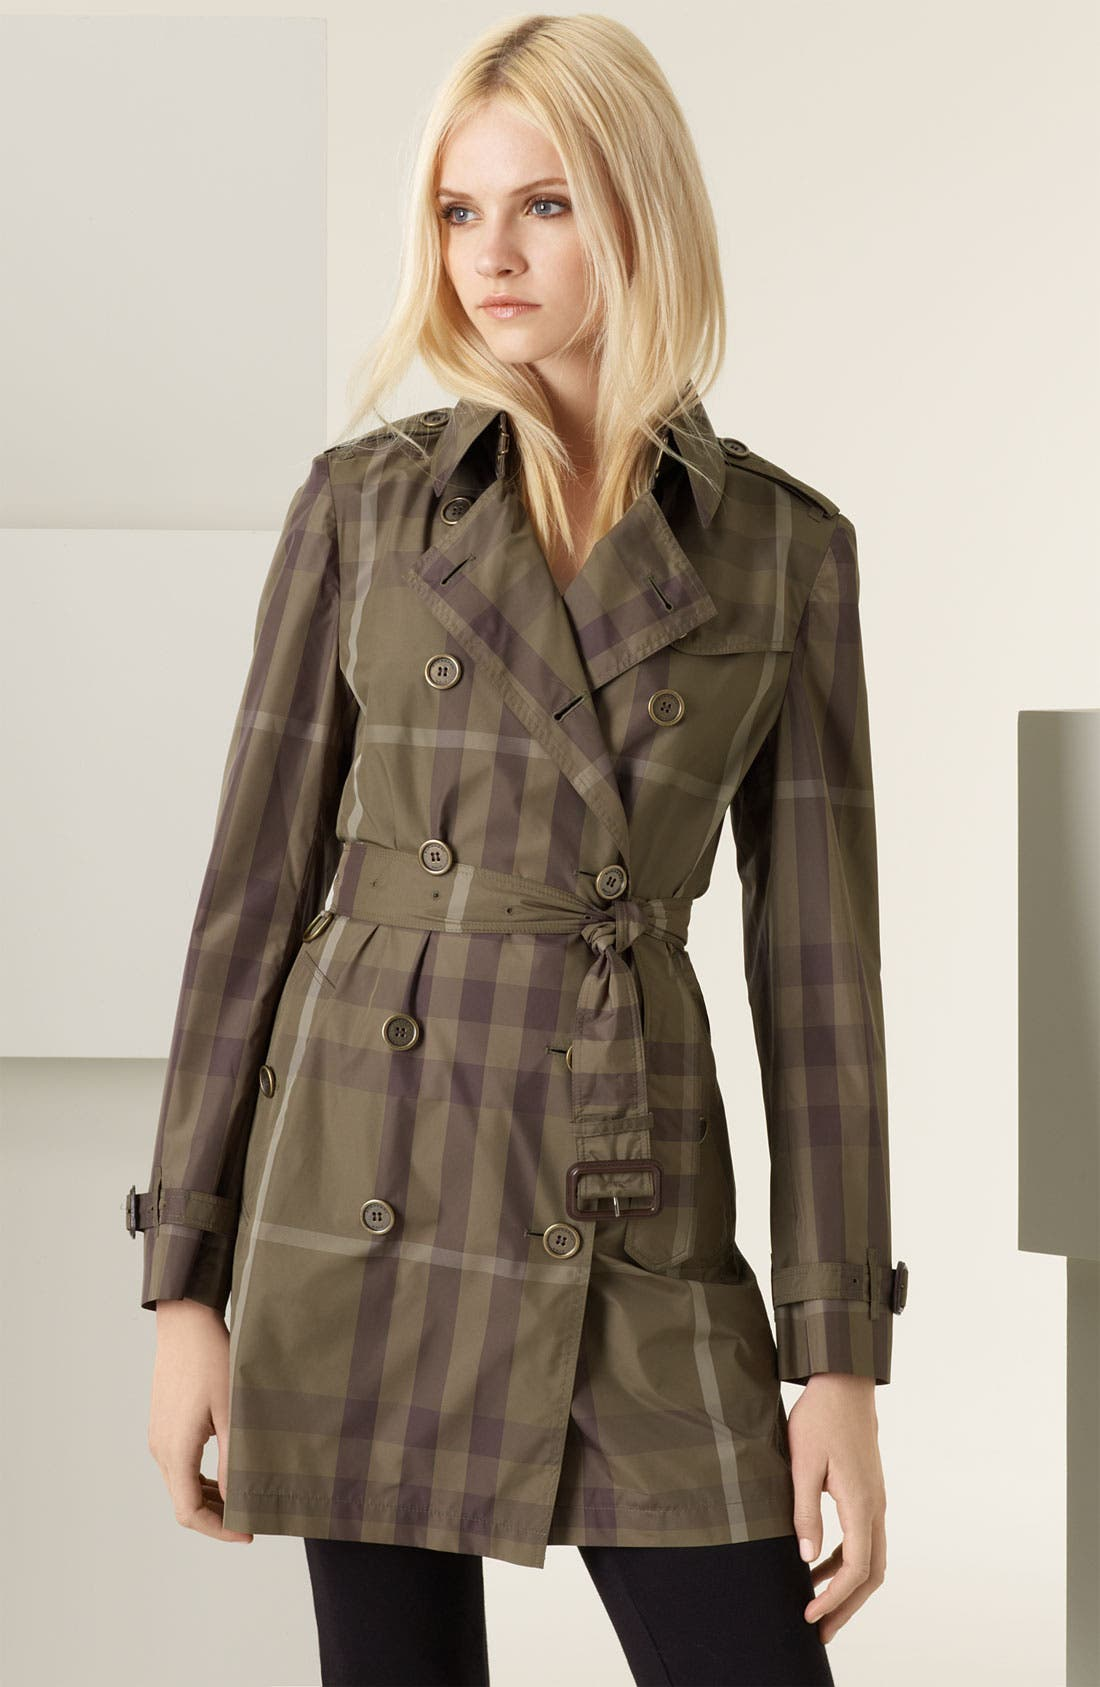 Giant Check Print Packable Trench Coat,                             Main thumbnail 1, color,                             261